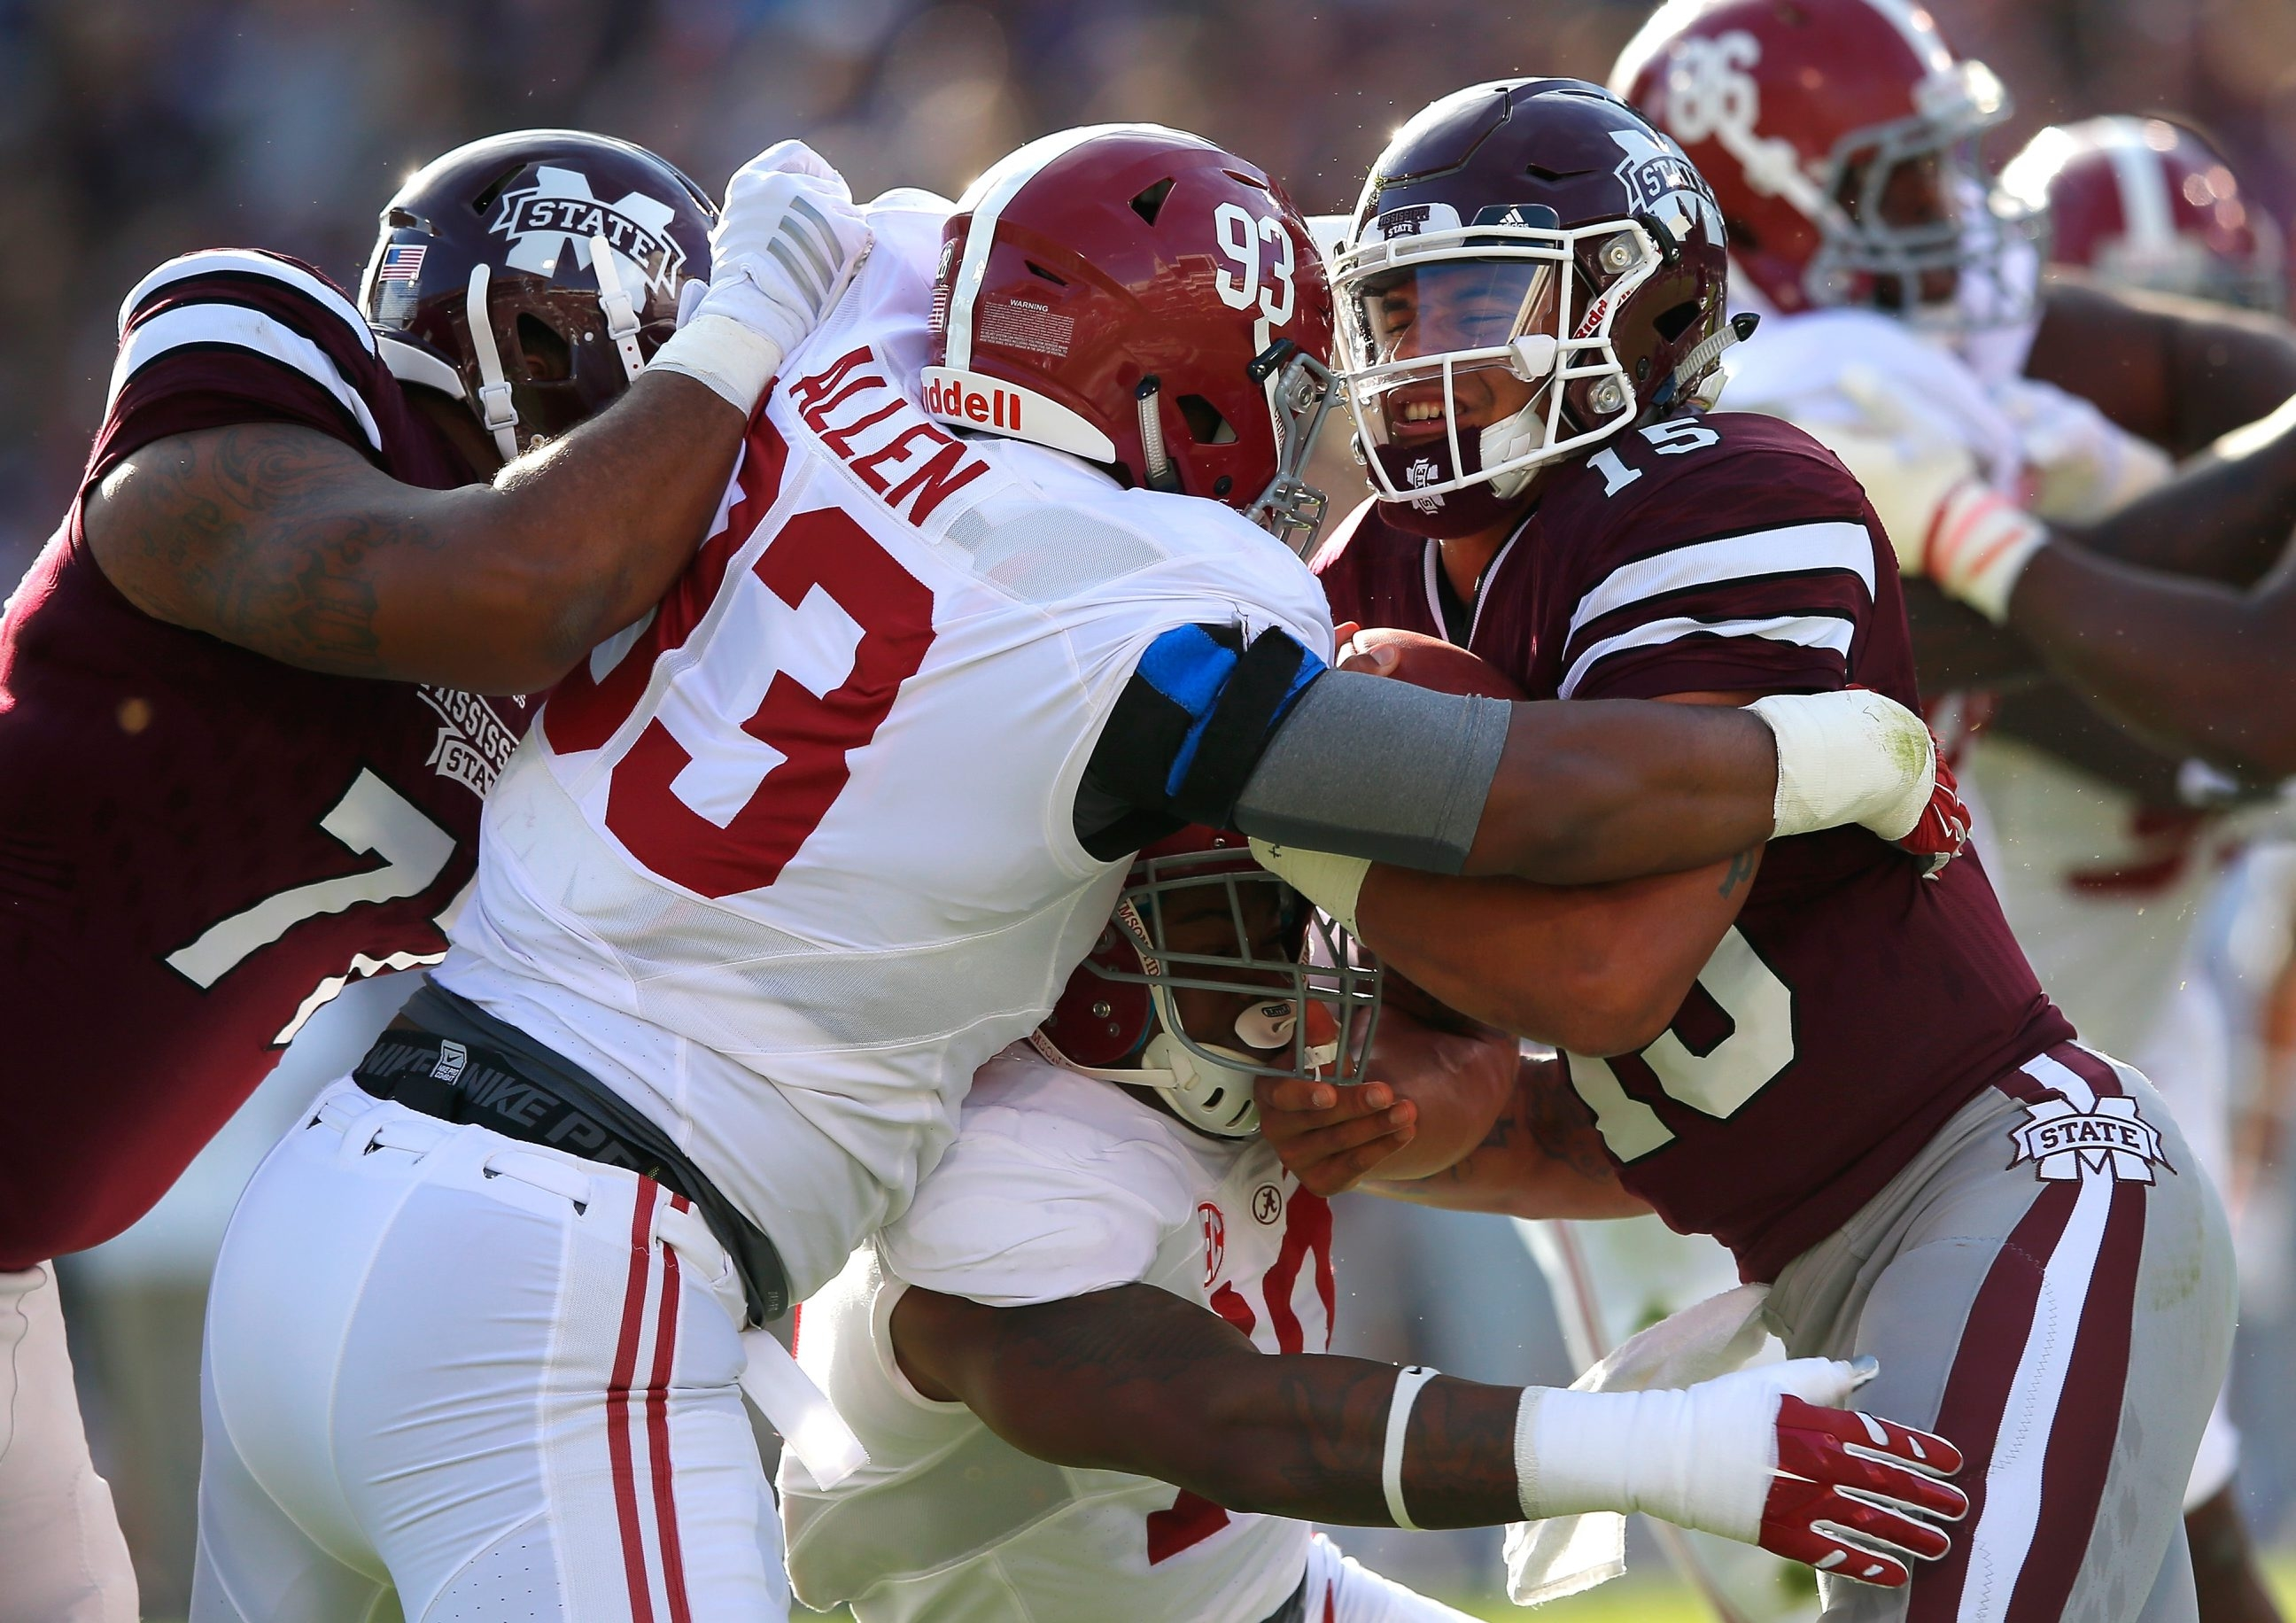 Jonathan Allen of Alabama would be a good fit as the Bills retool their defense, according to draft expert Mel Kiper Jr.